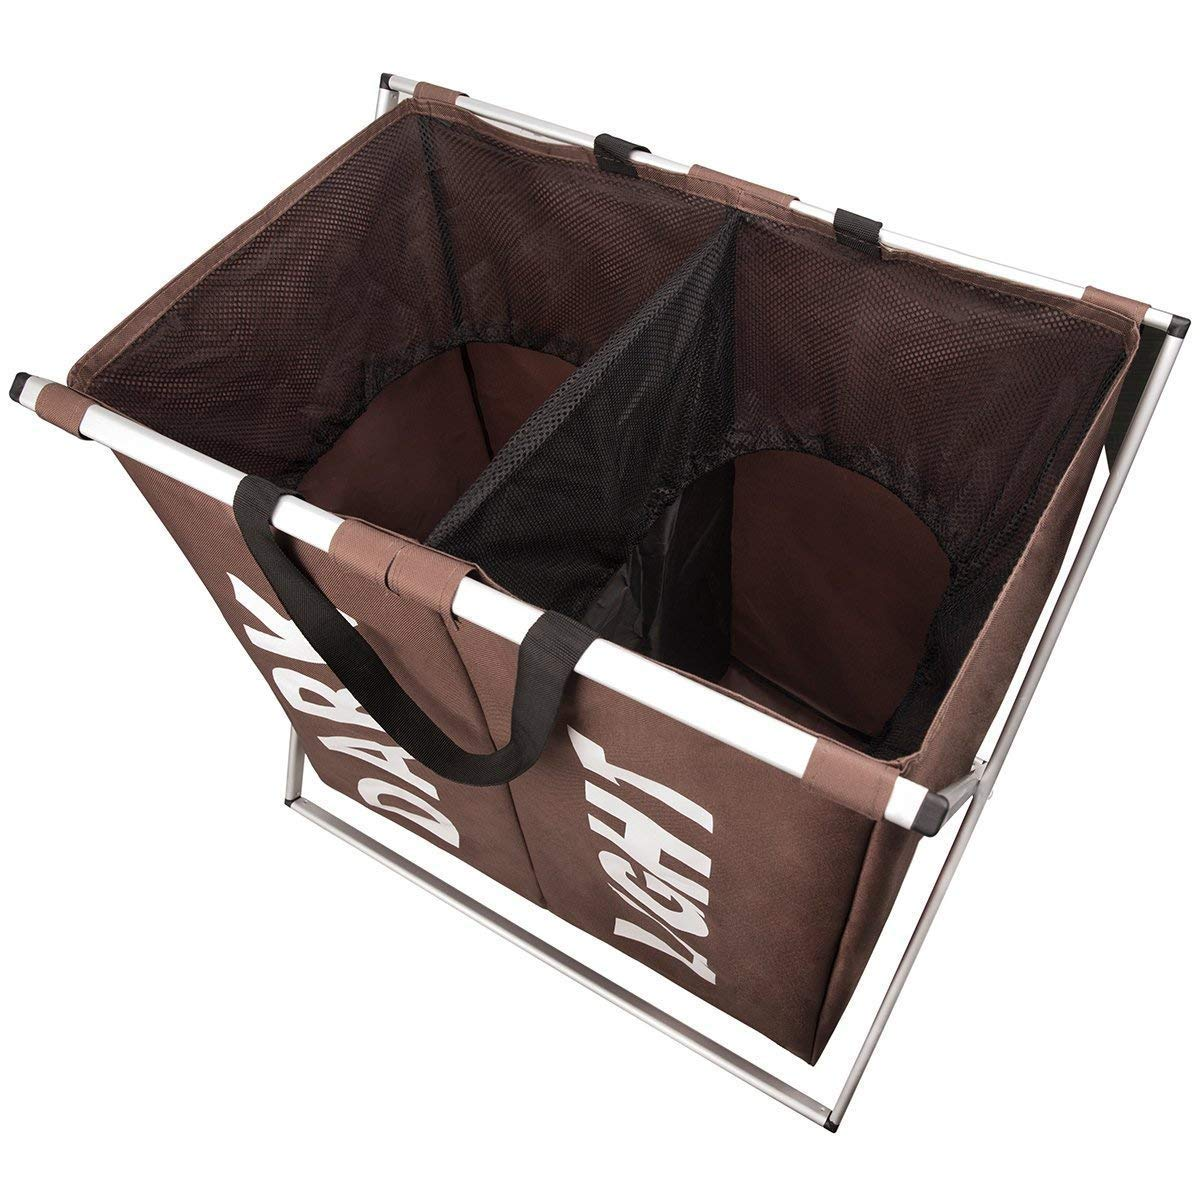 WISHPOOL Large 2 Section Laundry Hamper Basket with X-Frame Dirty Clothes Sorter Basket with Handle for Bathroom Bedroom Home(Coffee)